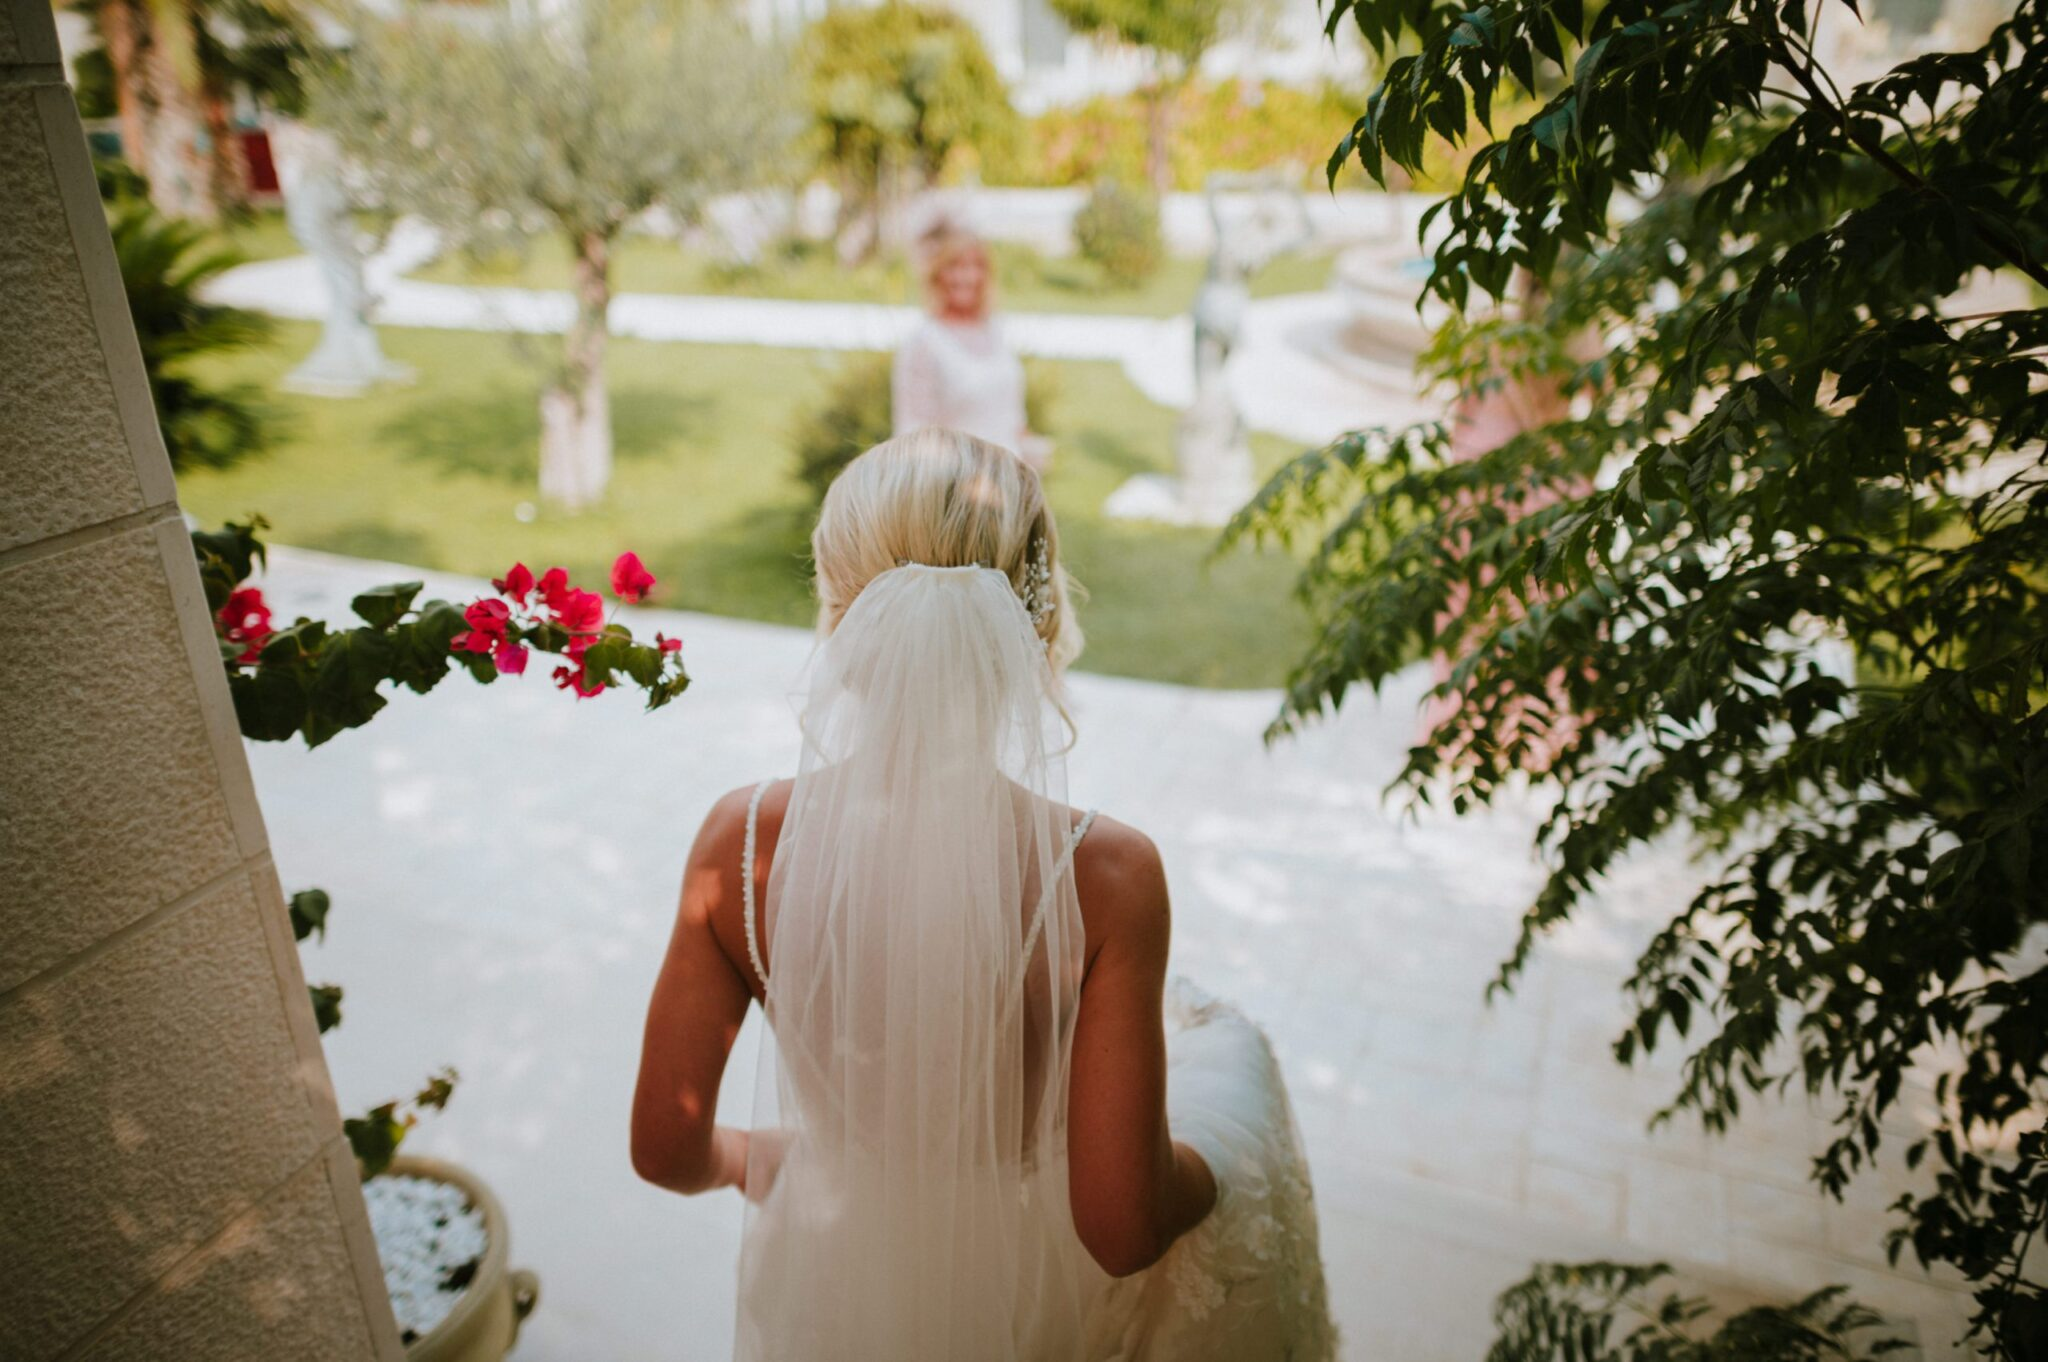 This image shows the bride from behind early in the day just as she got ready. She has an updo and a veil and she's holding her dress.